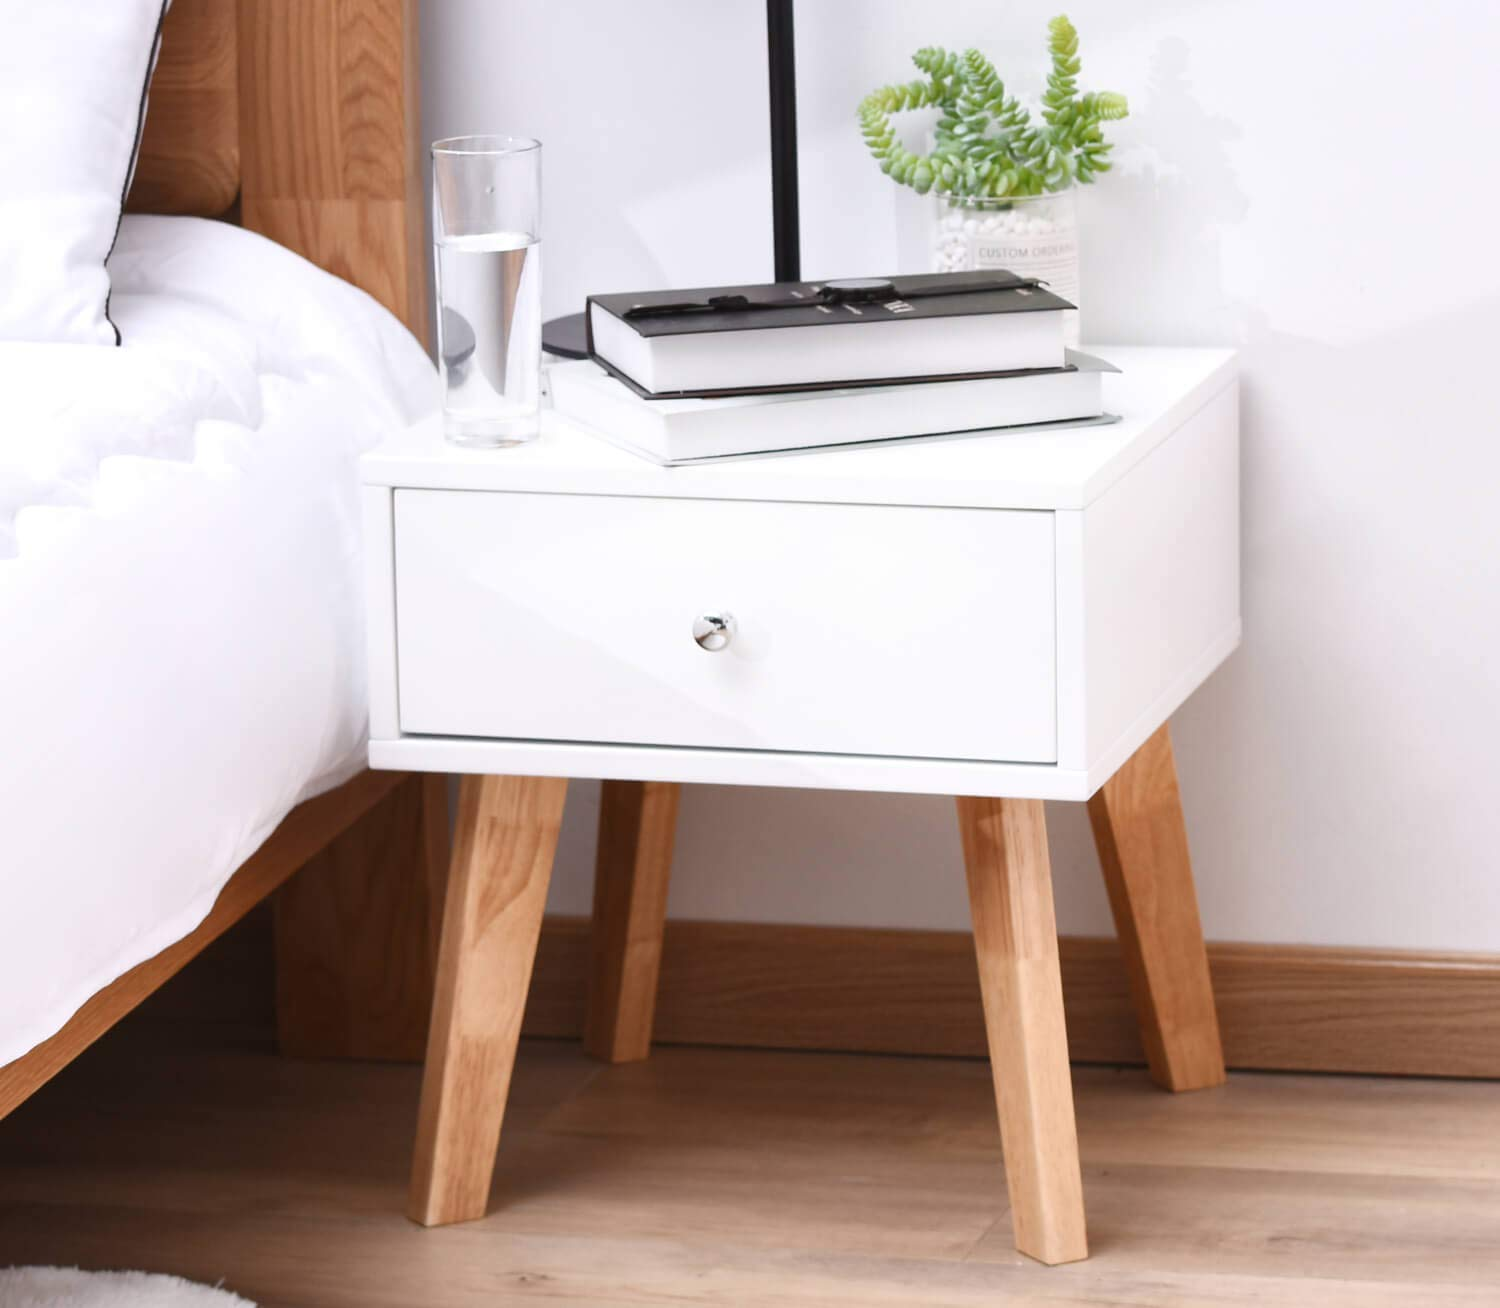 TaoHFE White Nightstand Wooden End Table with Drawer for Living Room Large Space Smooth Surface by TaoHFE